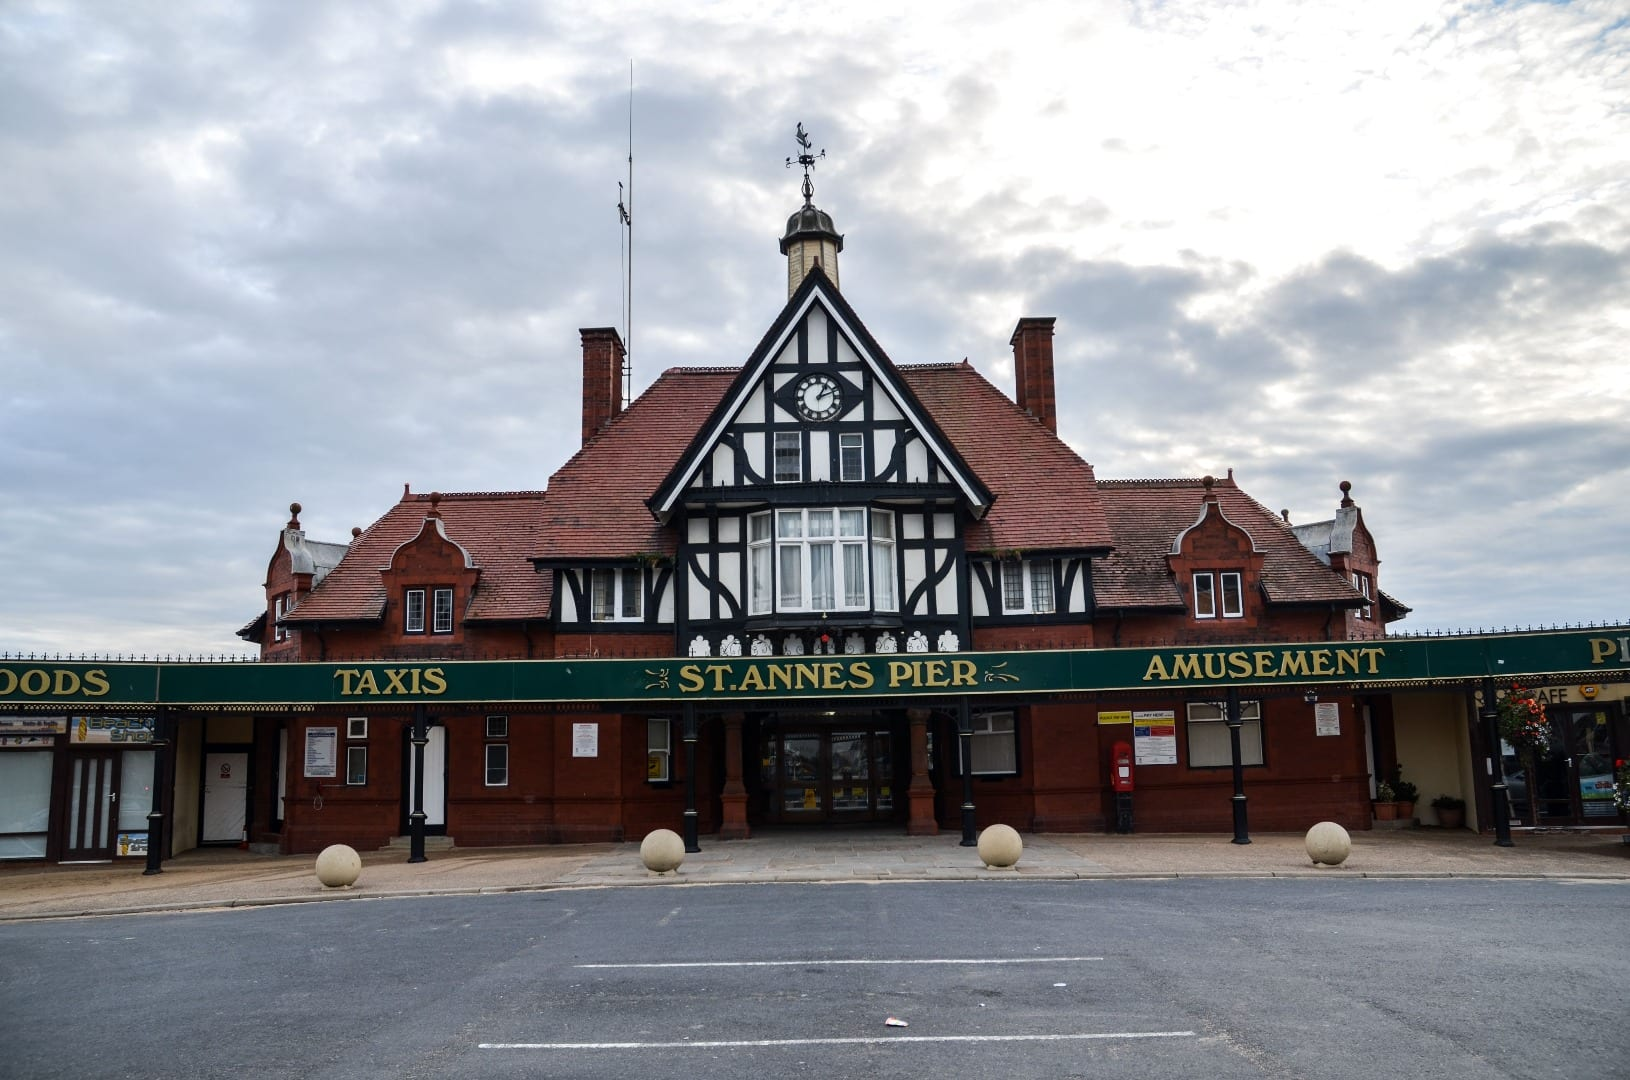 Front entrance of St Annes Pier